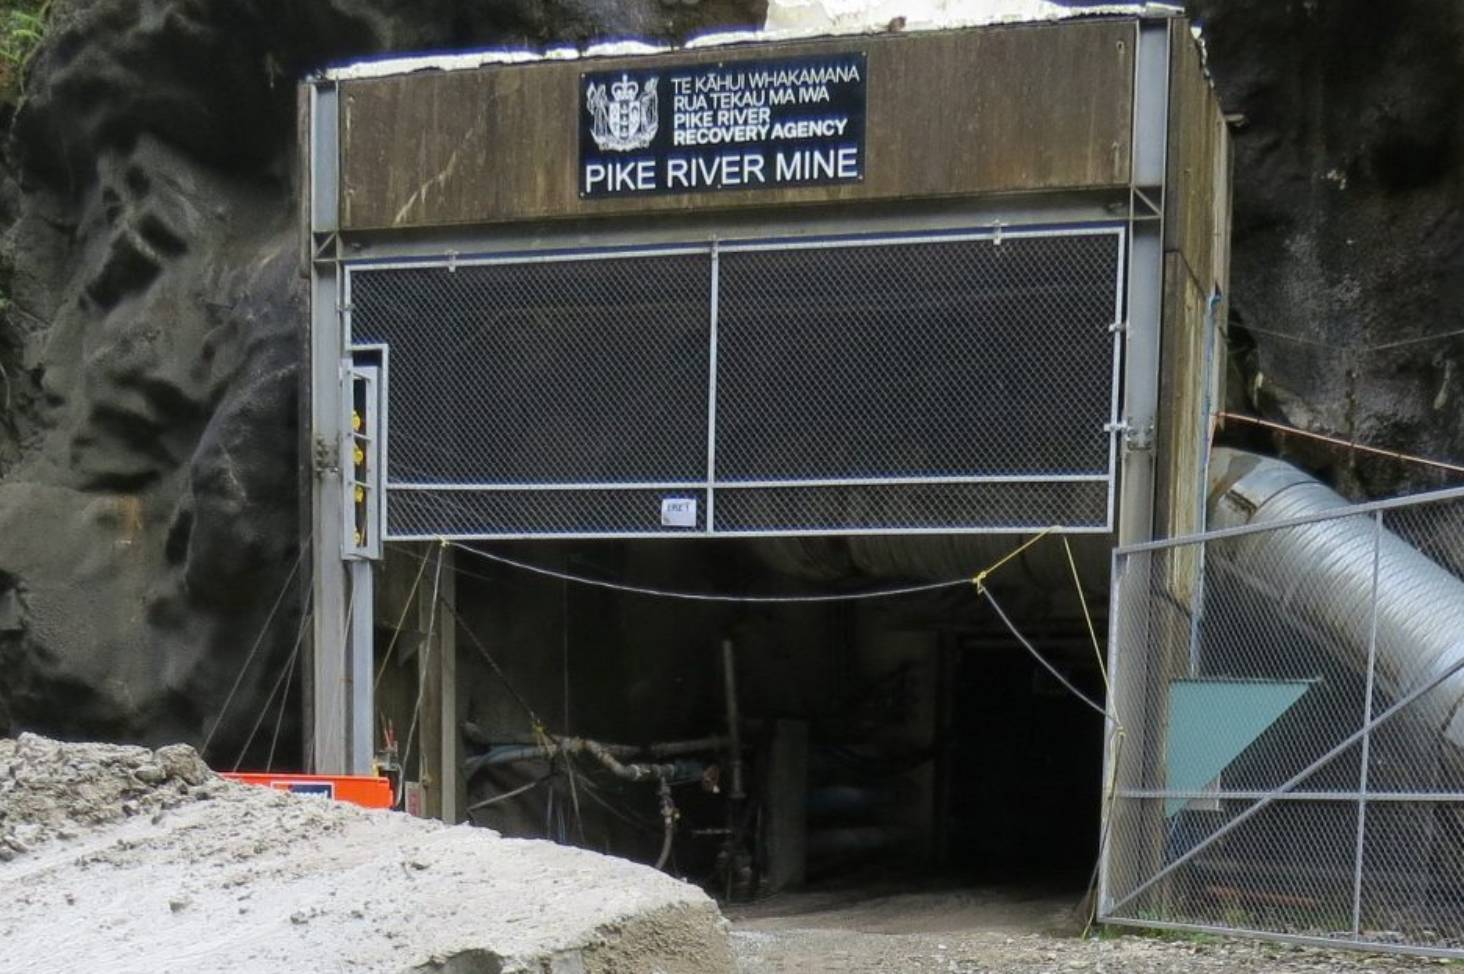 No major delays expected as Pike re-entry closes in on 'big